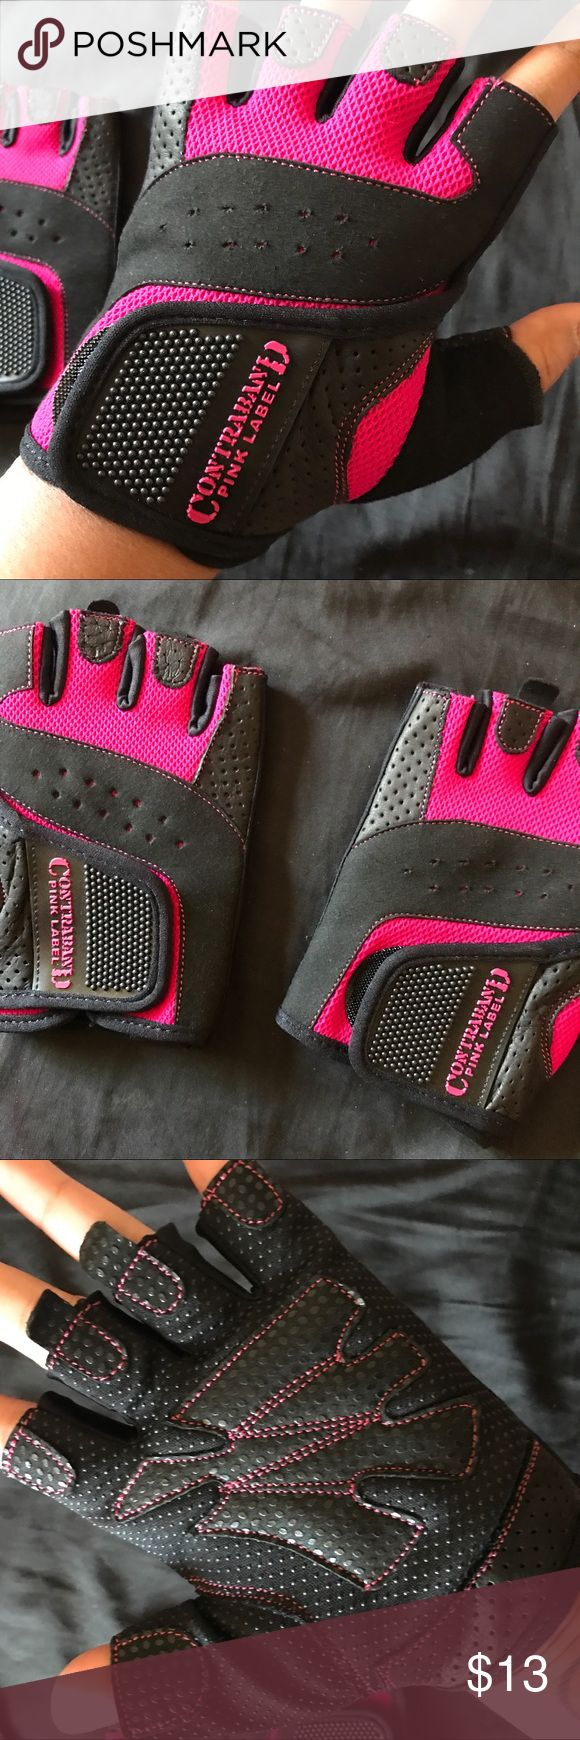 Large Women's Contraband Pink Label Lifting Gloves New!! Never used before. Weight lifting gloves with grip lock padding in pink. Best seller on amazon. contraband Accessories Gloves & Mittens